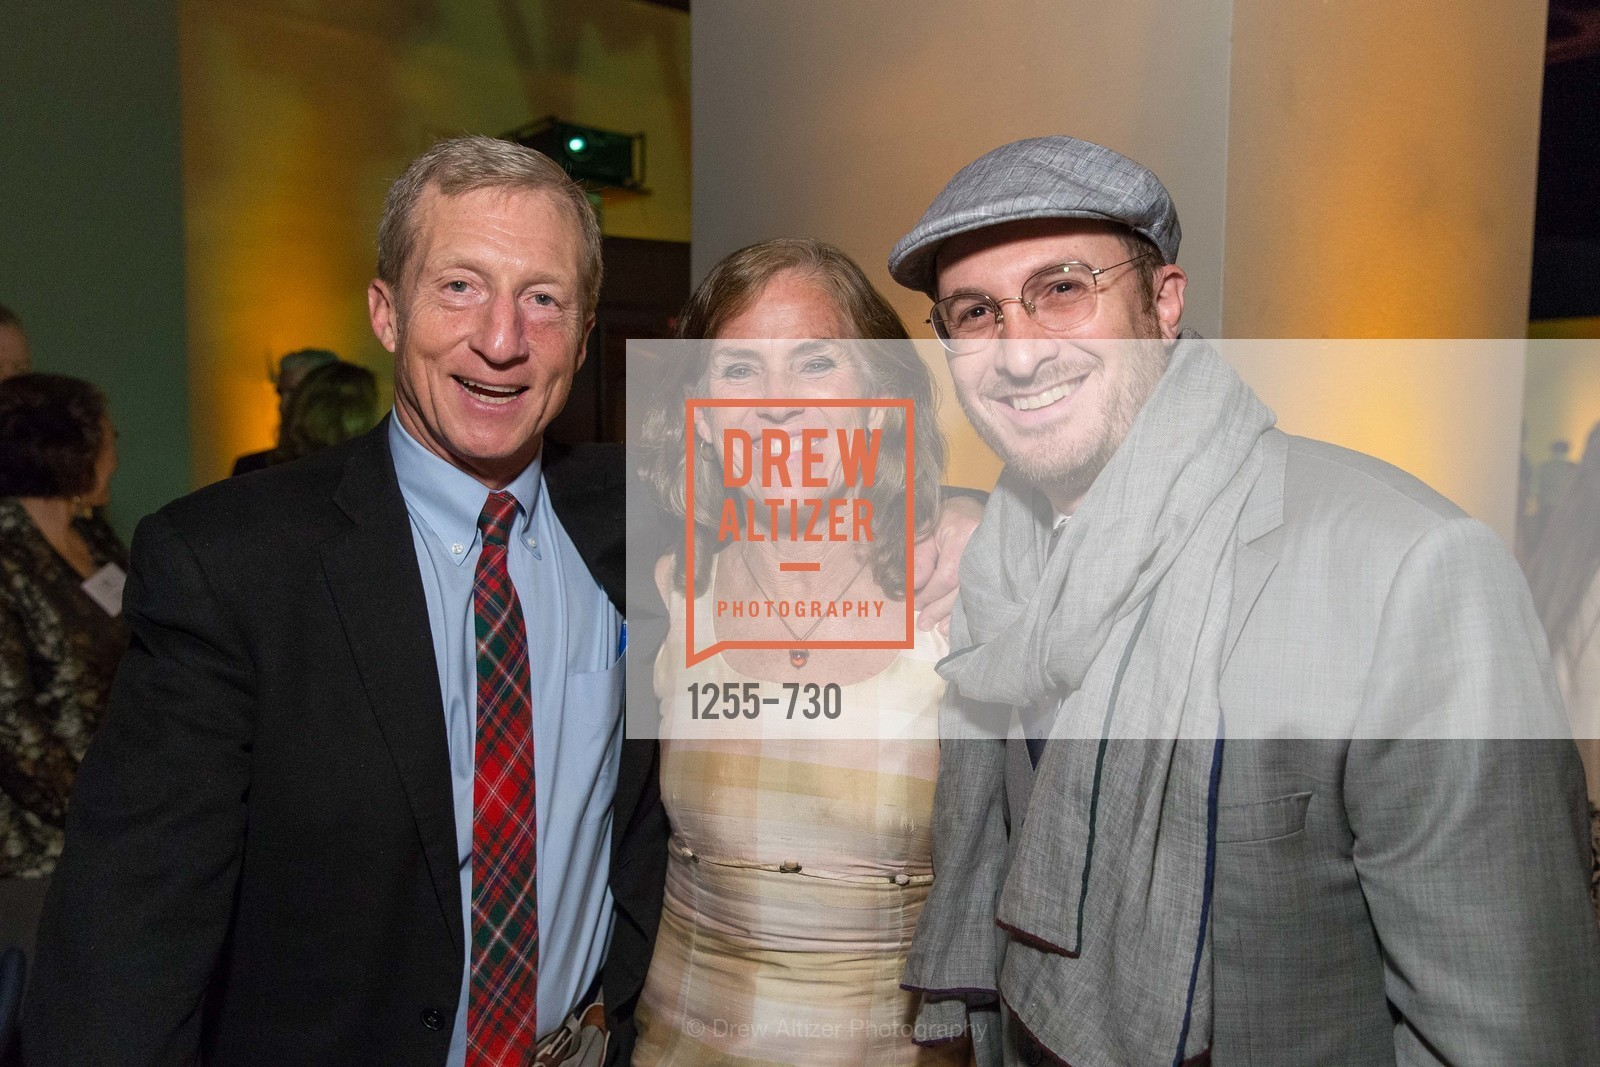 Tom Steyer, Kat Taylor, Darren Aronofsky, 2015 SIERRA CLUB Trail Blazers Ball, US, May 16th, 2015,Drew Altizer, Drew Altizer Photography, full-service agency, private events, San Francisco photographer, photographer california